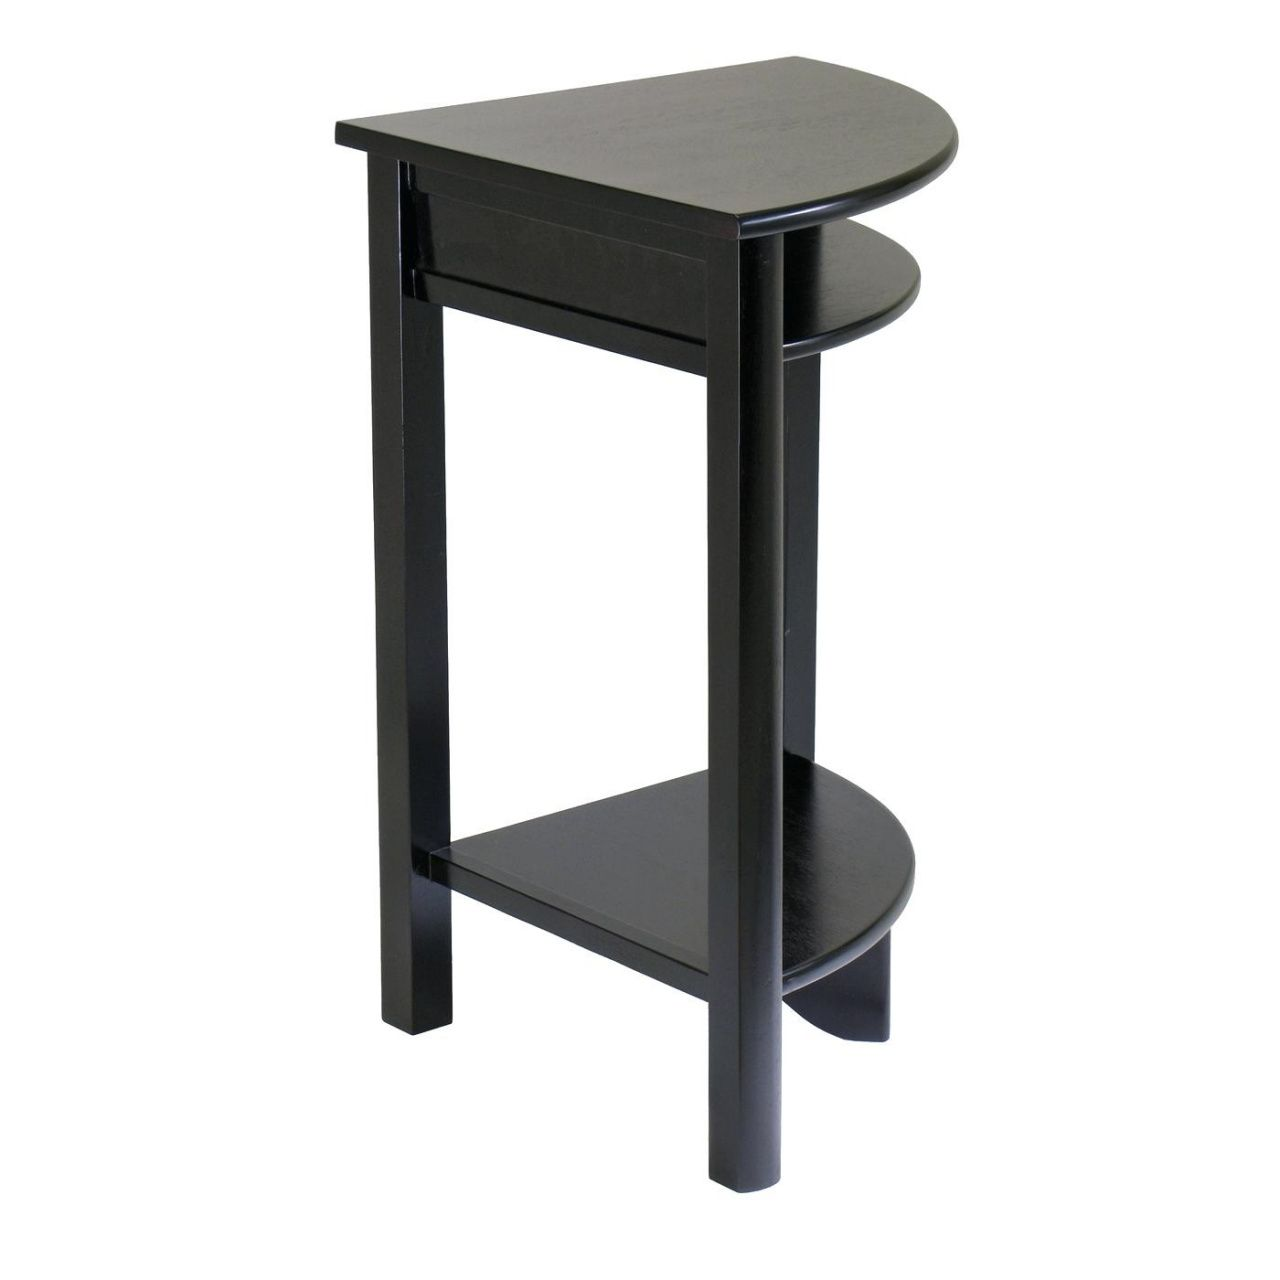 the fantastic great small corner end table jockboymusic accent luxury home office furniture check more bathroom rack black cube long round concrete top liberty tables towel